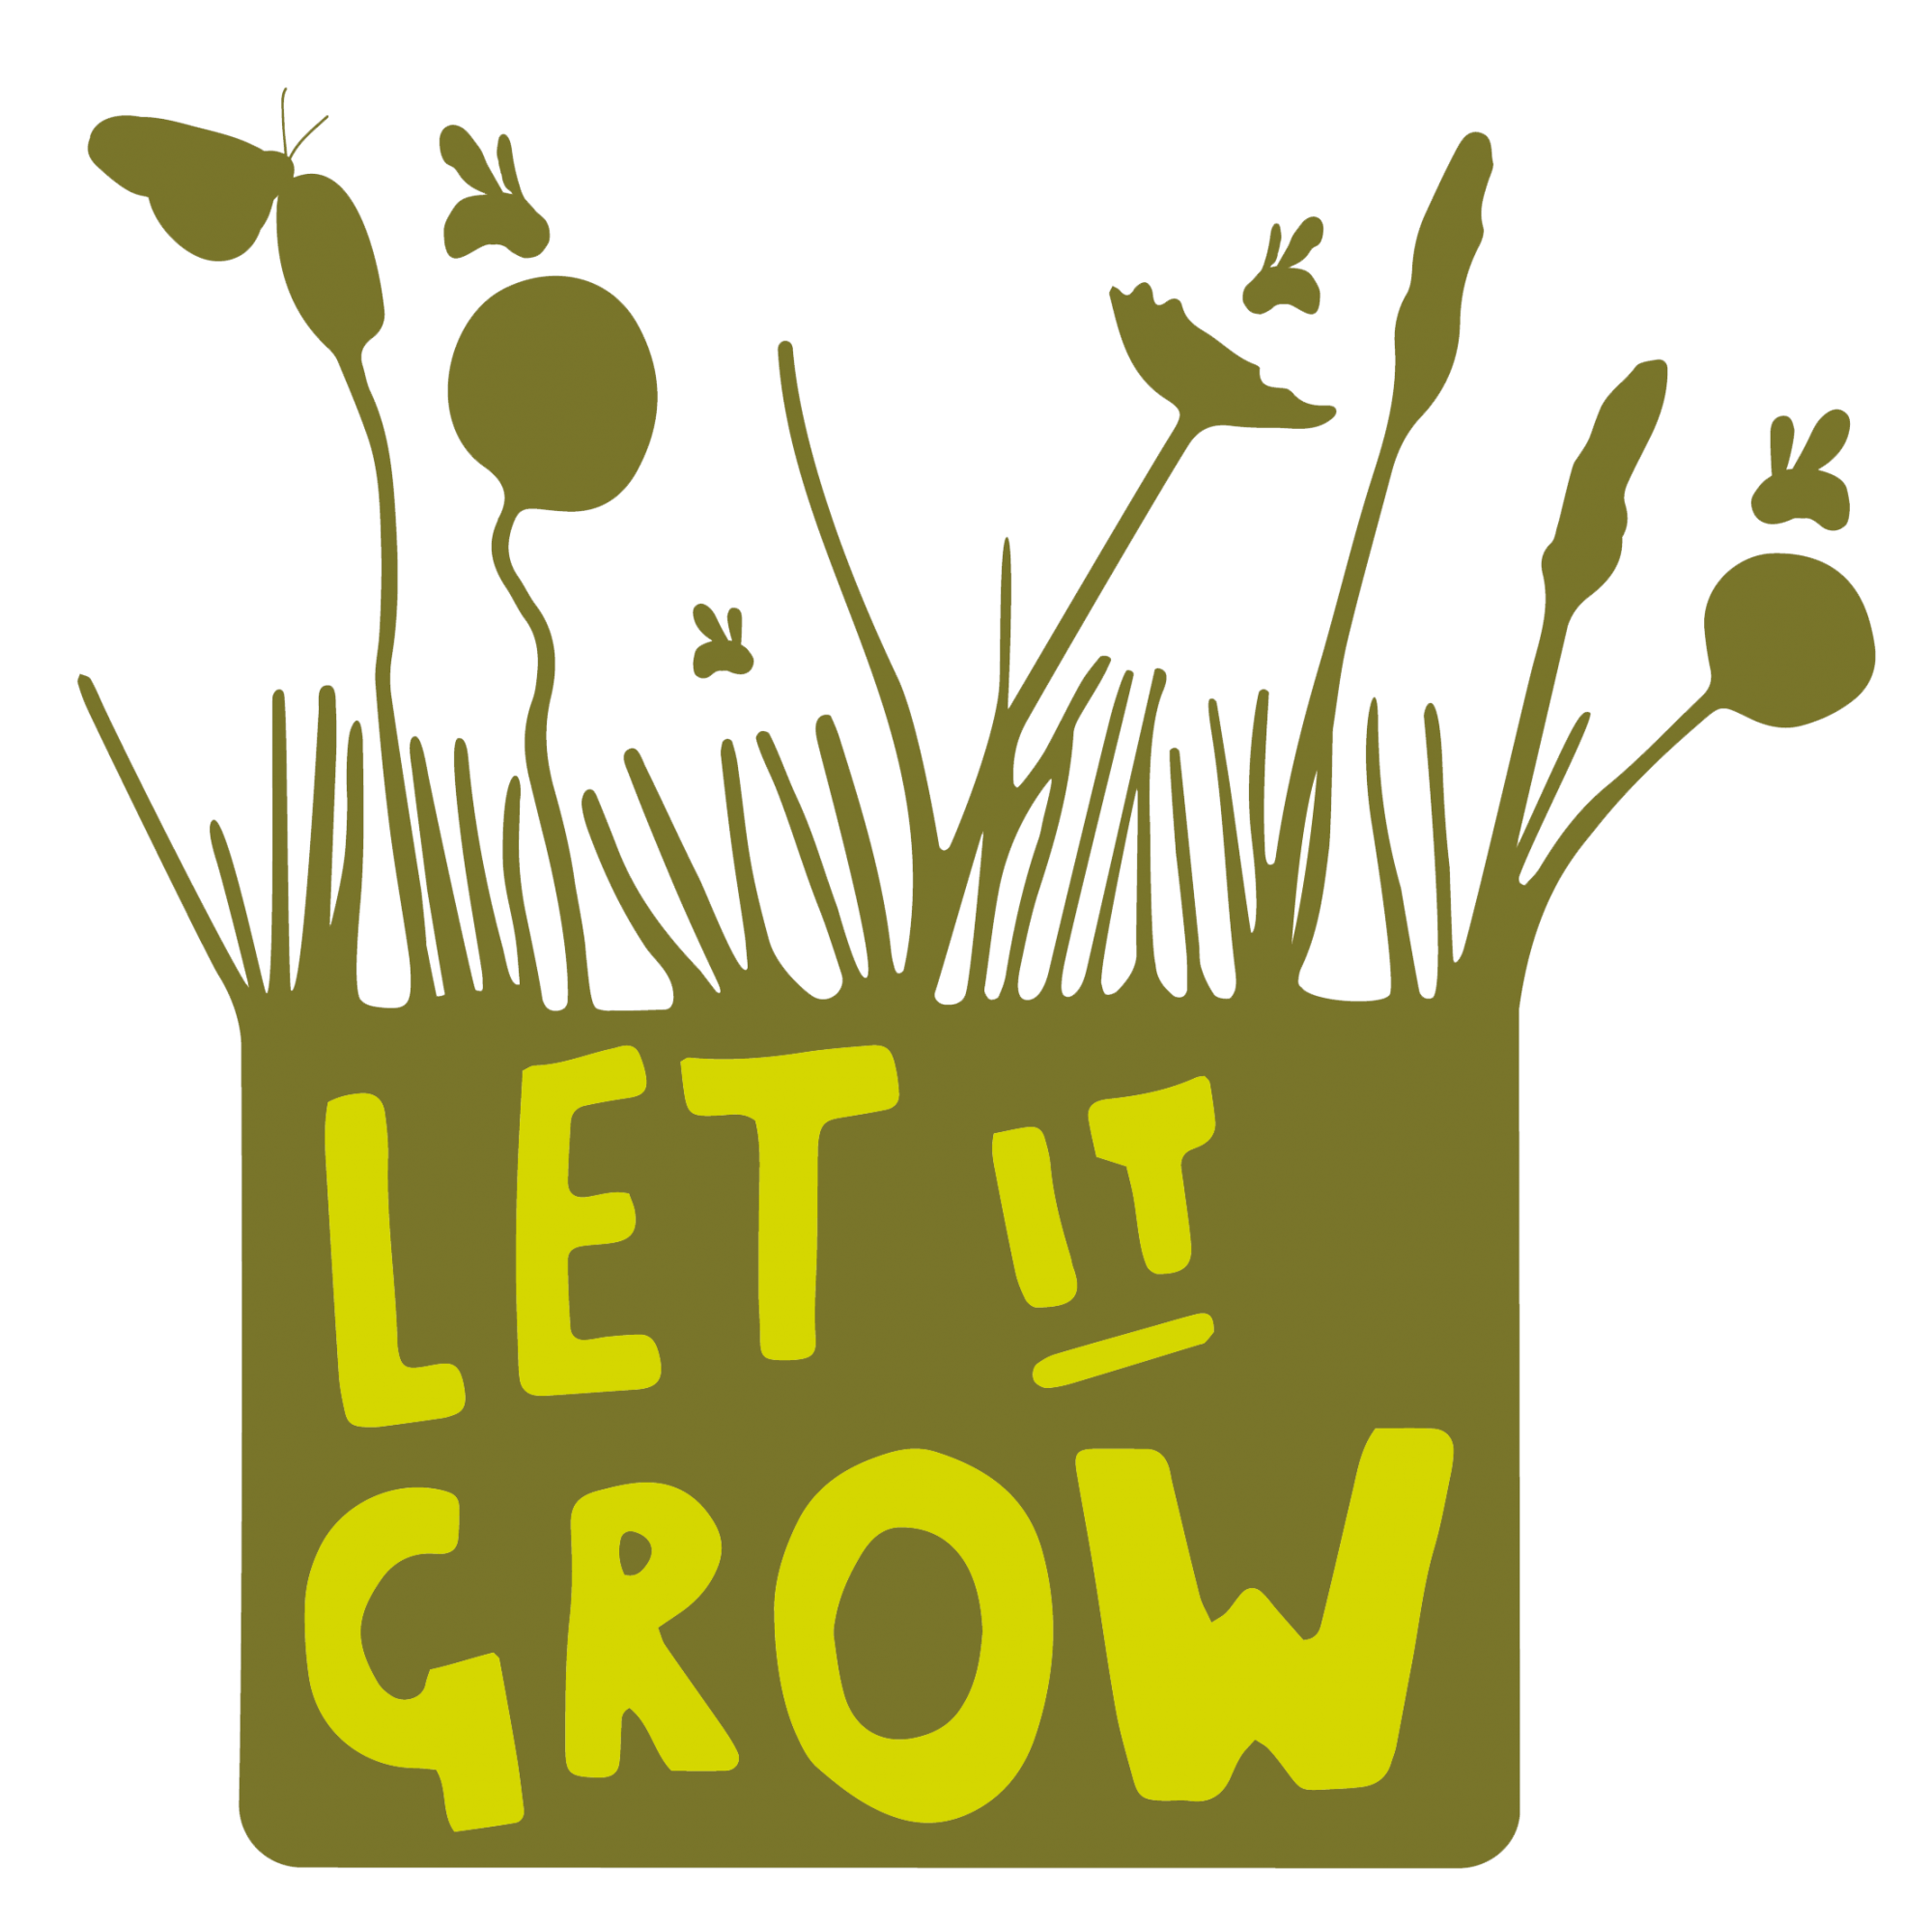 logolet-it-grow-trasp.png